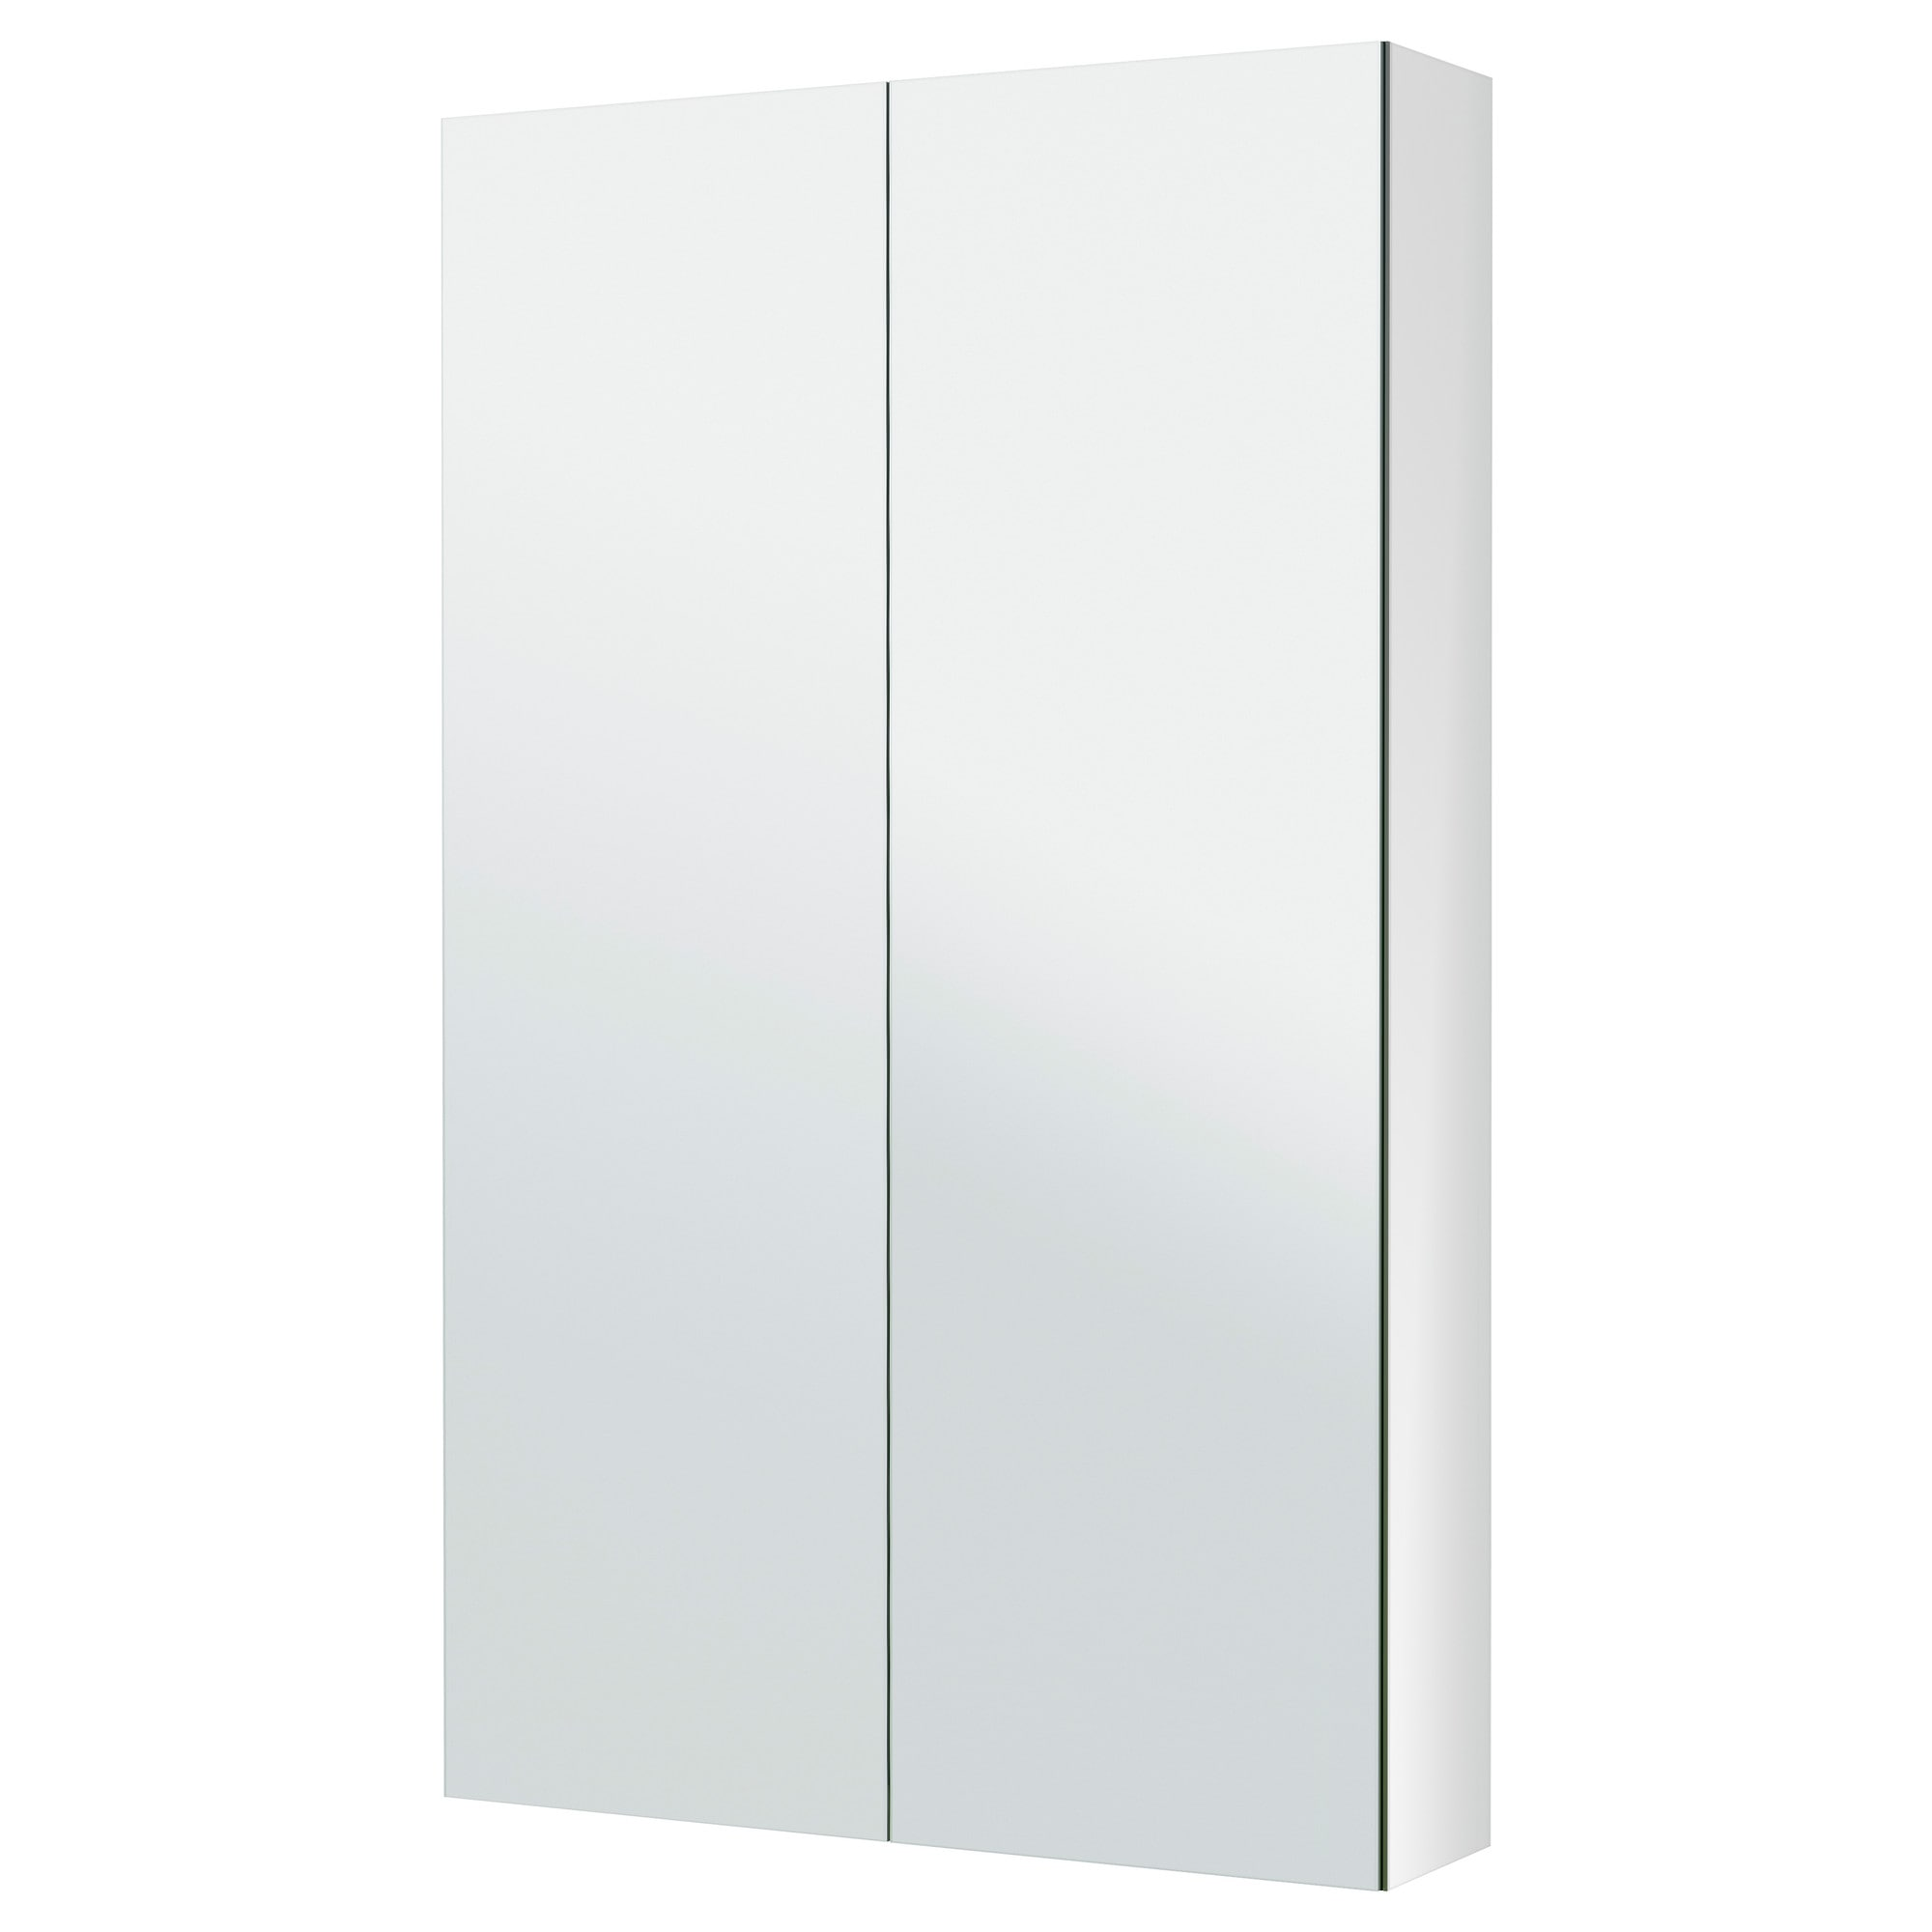 "GODMORGON Mirror cabinet with 2 doors 31 1 2x5 1 2x37 3 4 "" IKEA"